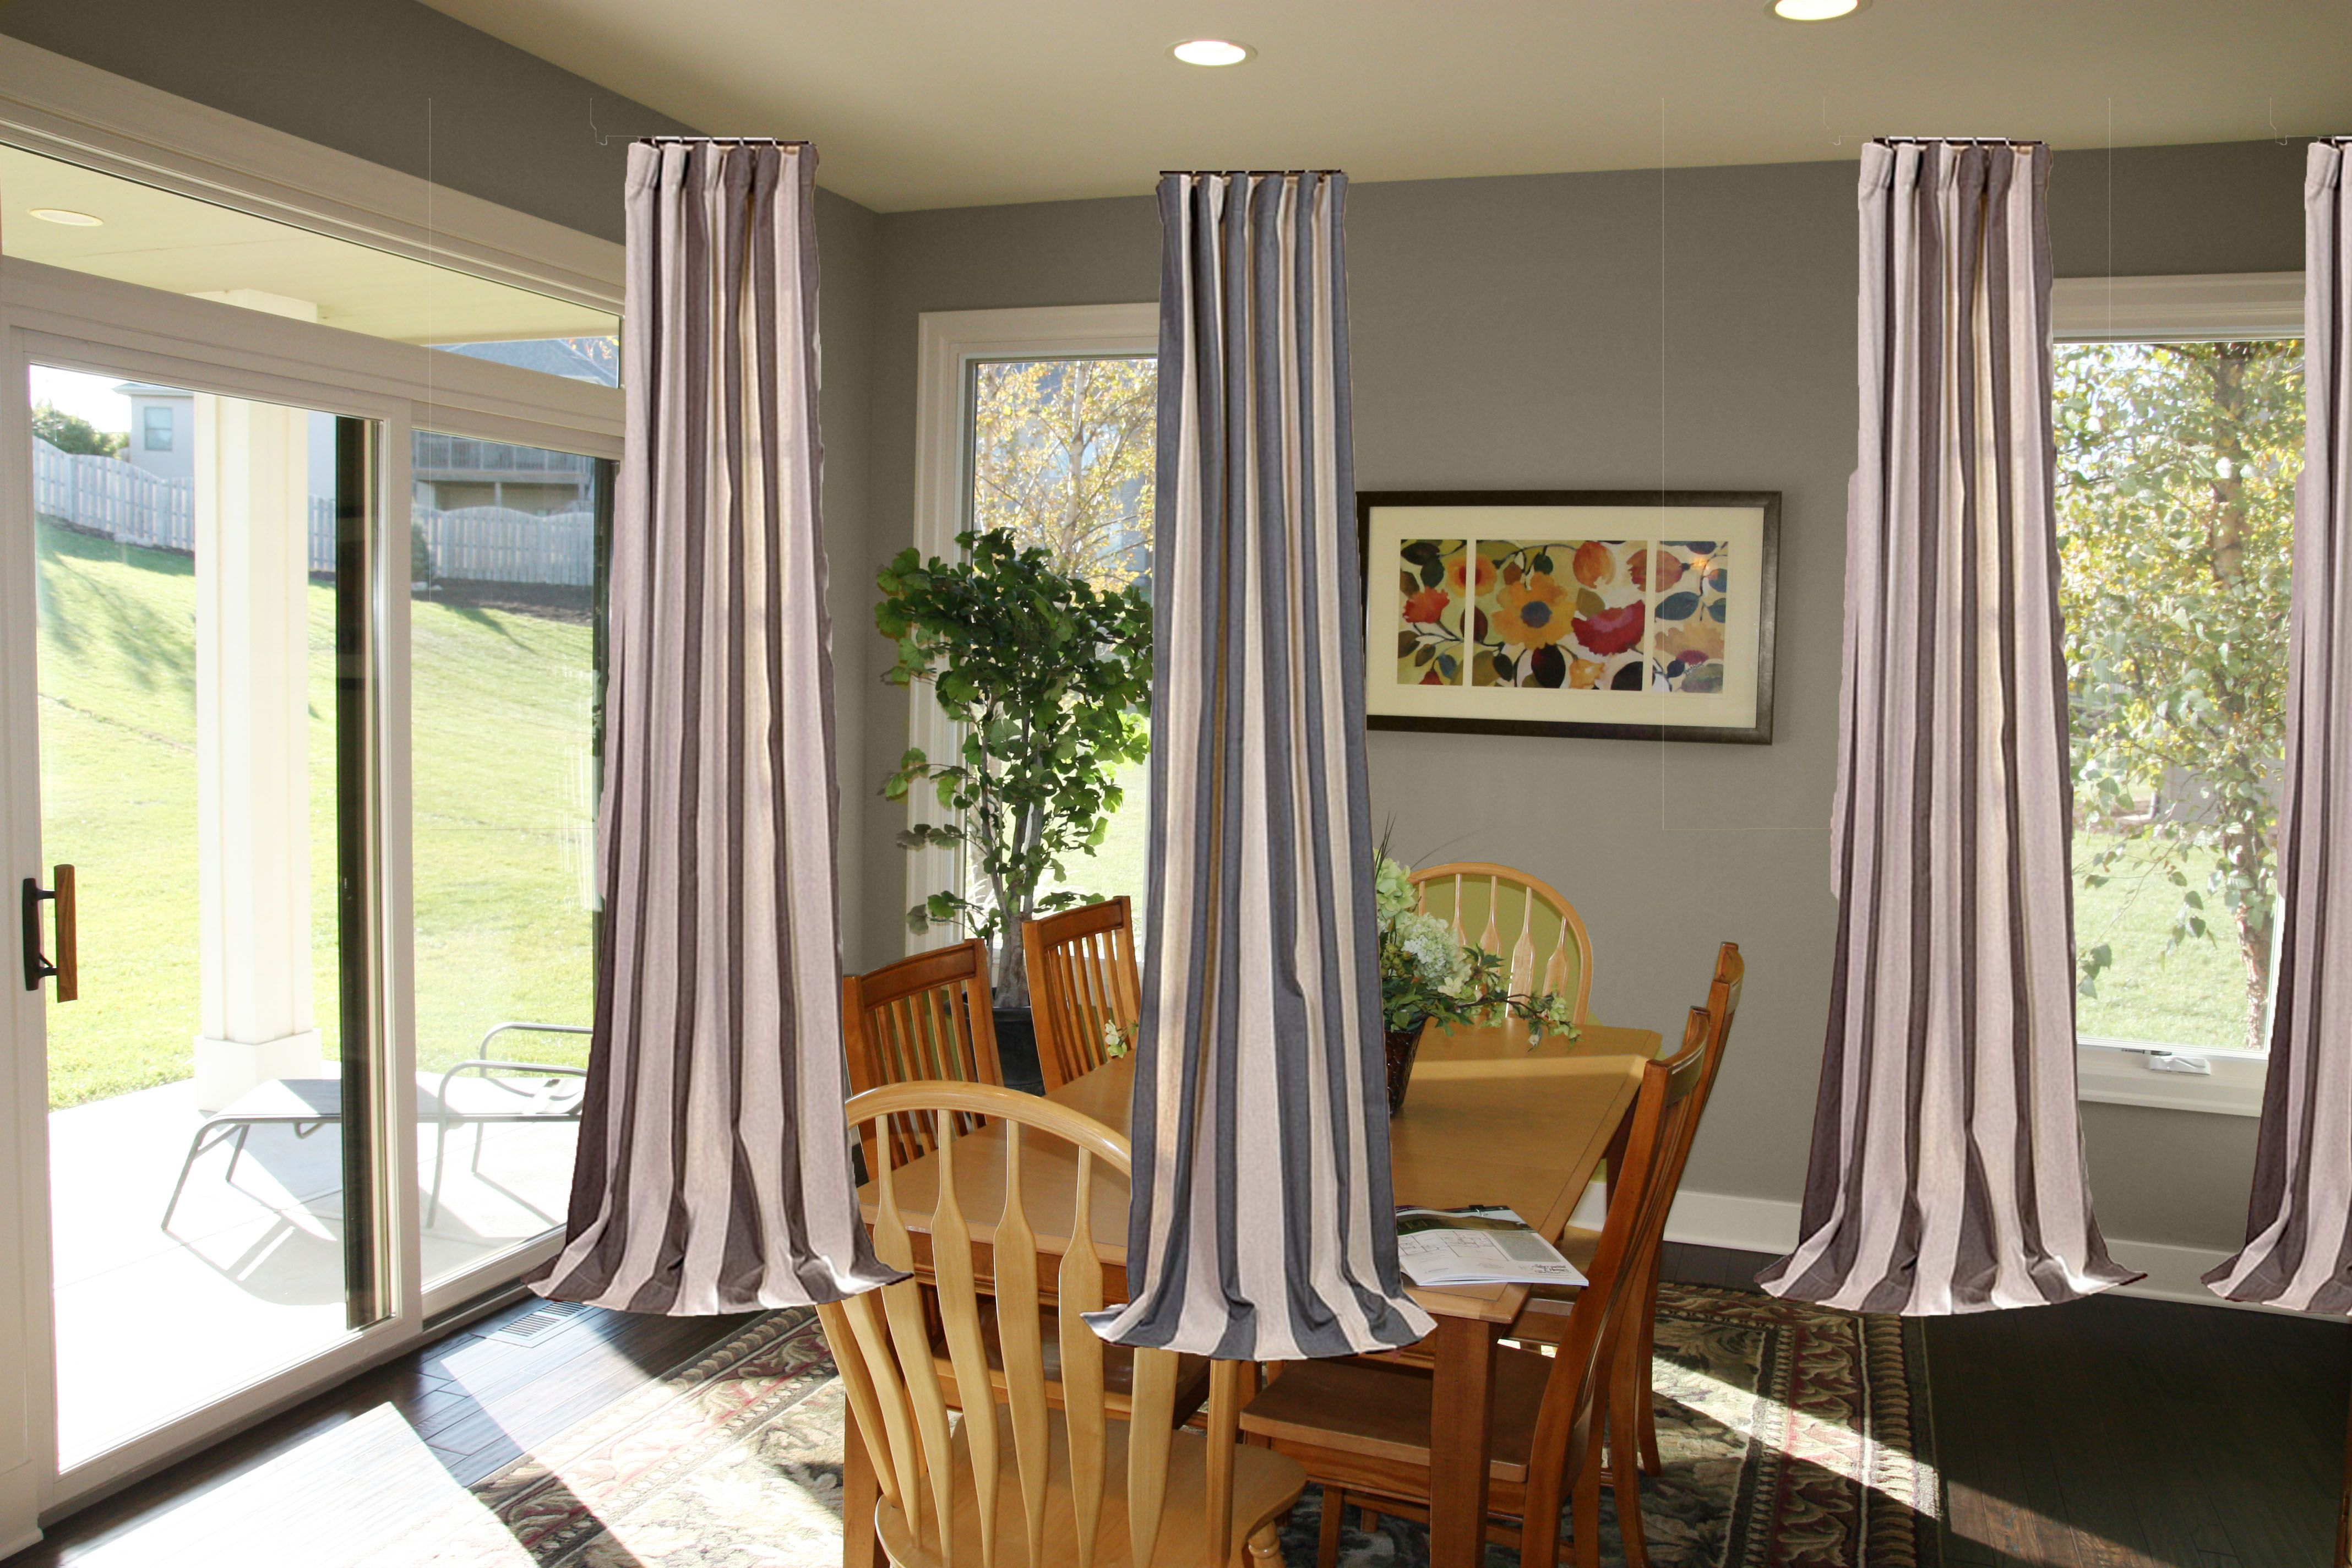 Image Result For Short Curtain Rods For Side Panels Dining Room Decor Dining Room Walls Patio Door Curtains